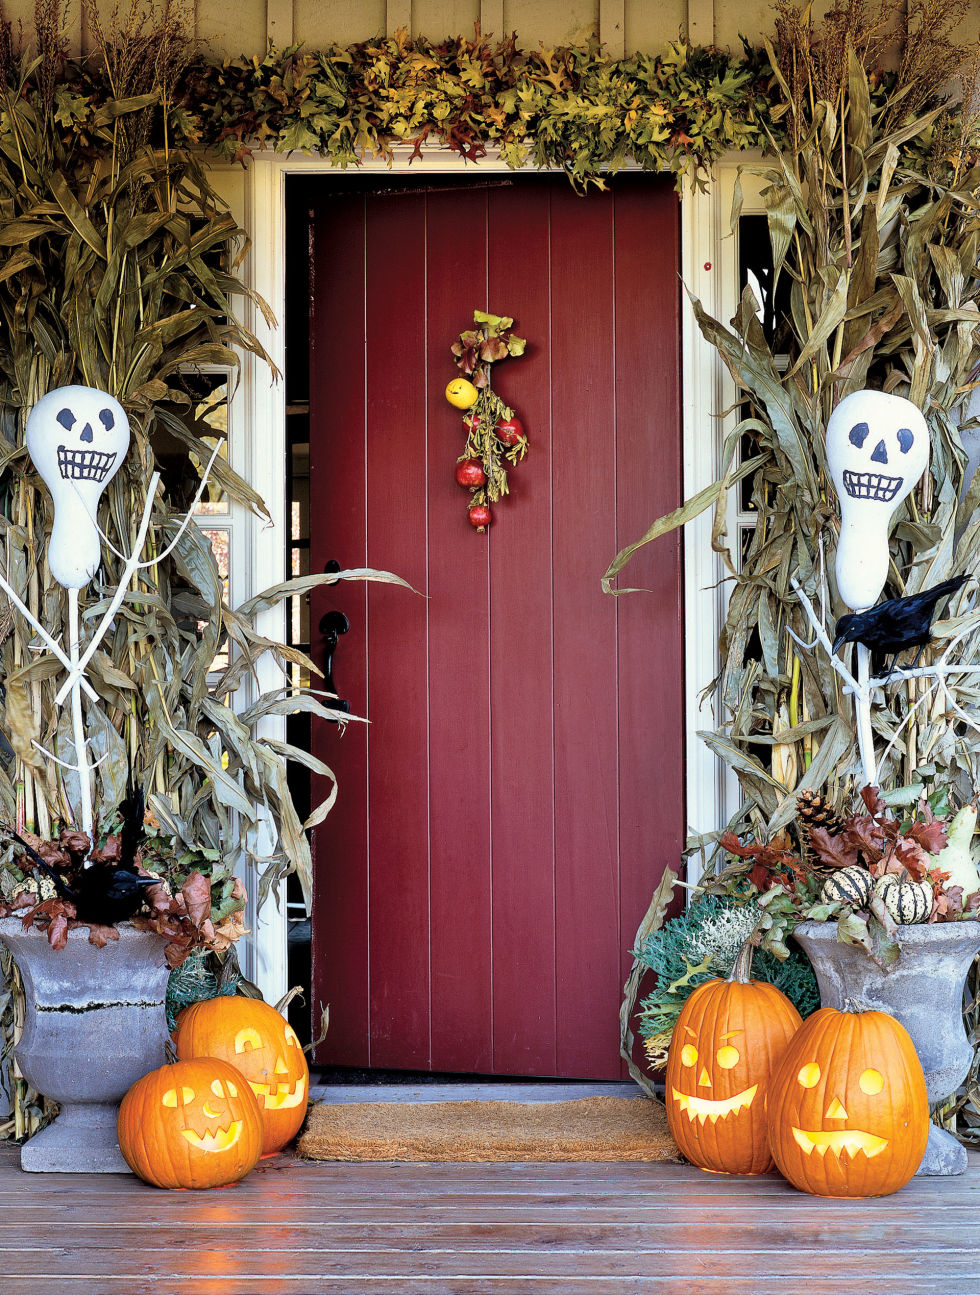 door halloween decorations - Halloween 2016 Decorations